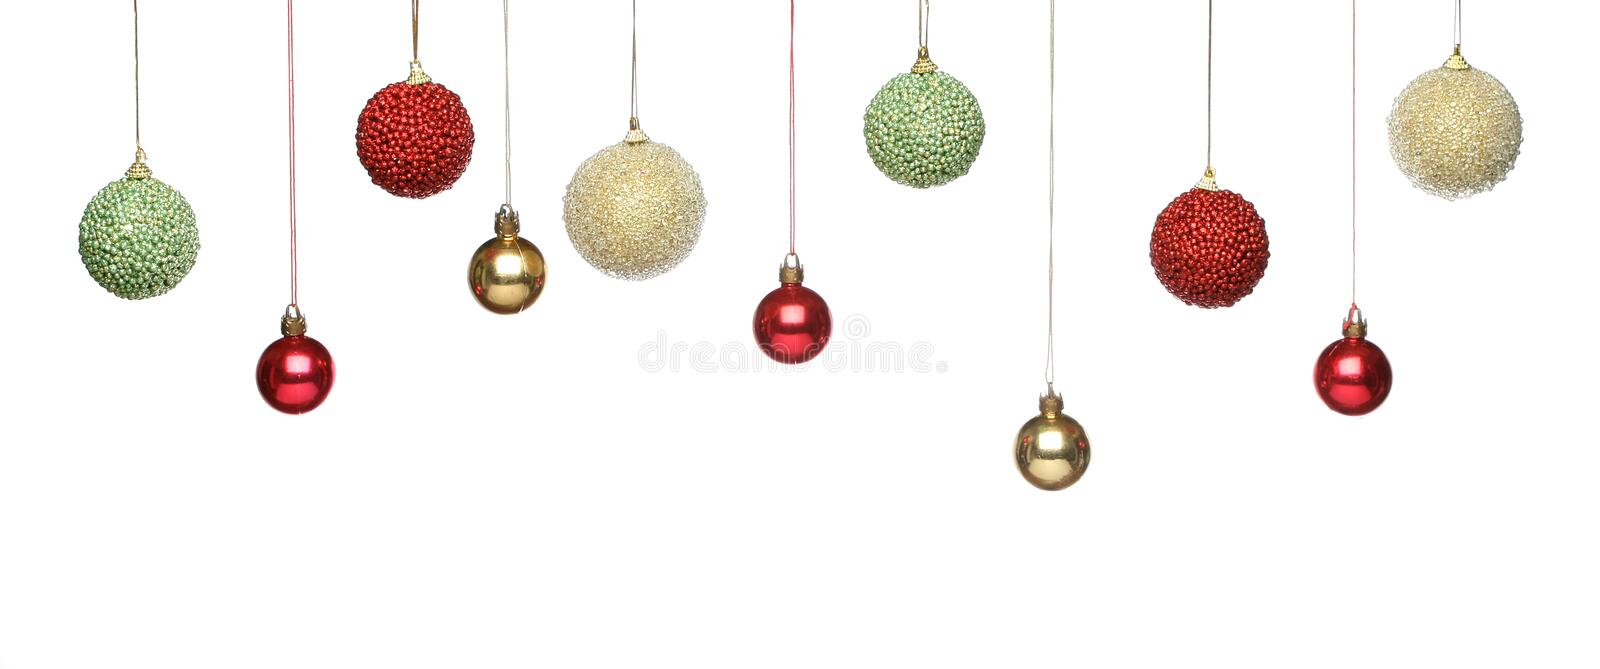 Download Christmas decorations stock photo. Image of baubles, ball - 11714692